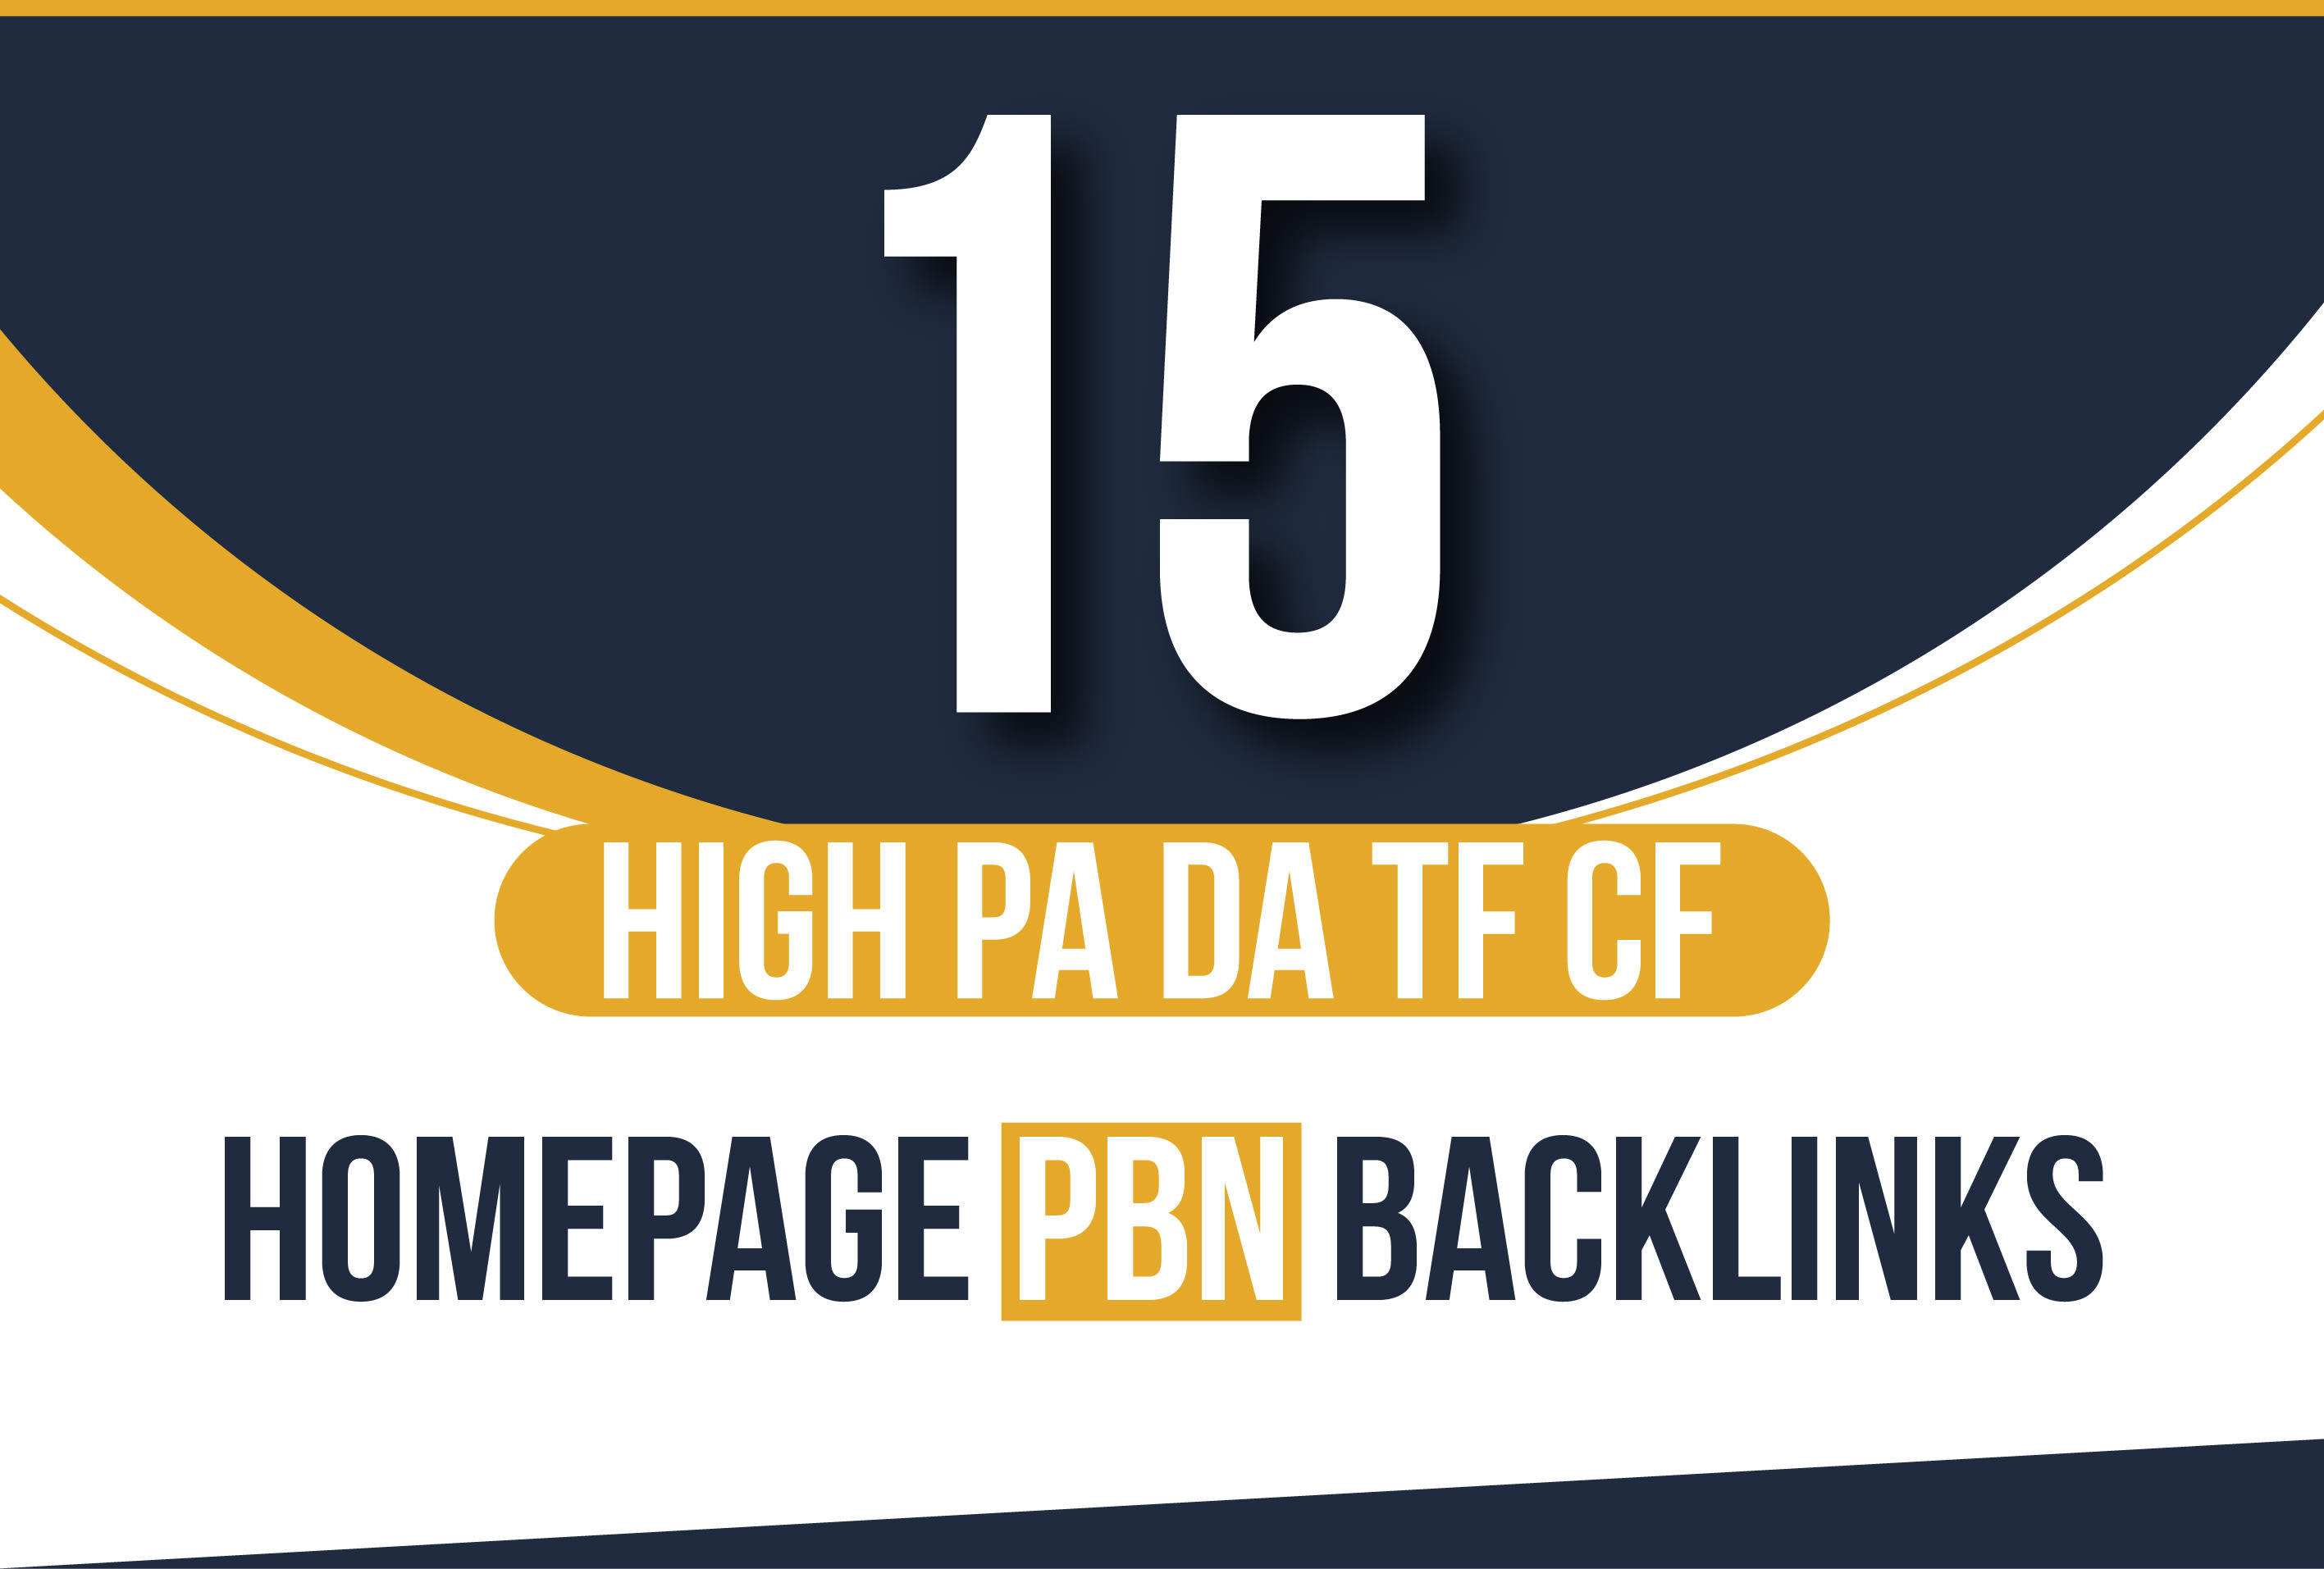 I Will Do 15 Unique High Authority PA DA TF CF Homepage PBN Backlinks